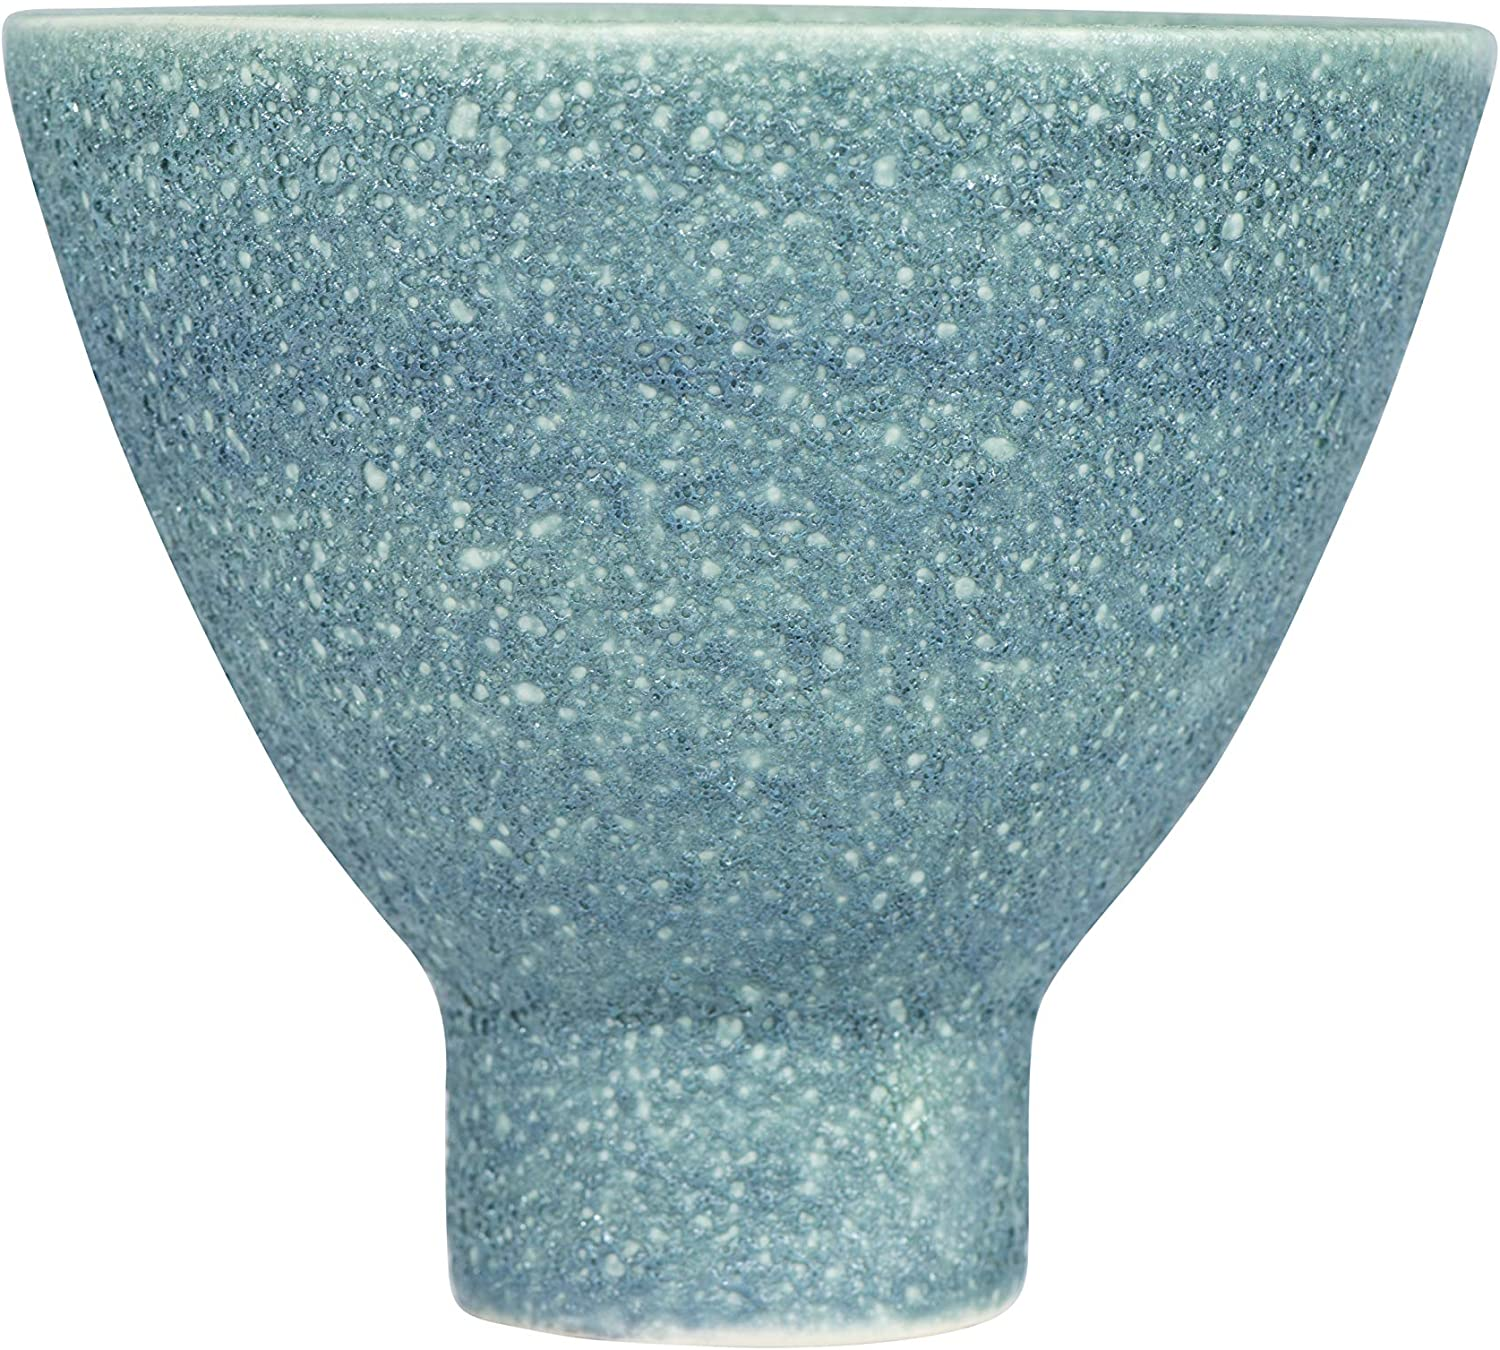 Creative Co-op Matte Stoneware Planter with Reactive Glaze Finish (Each one Will Vary), Teal Green